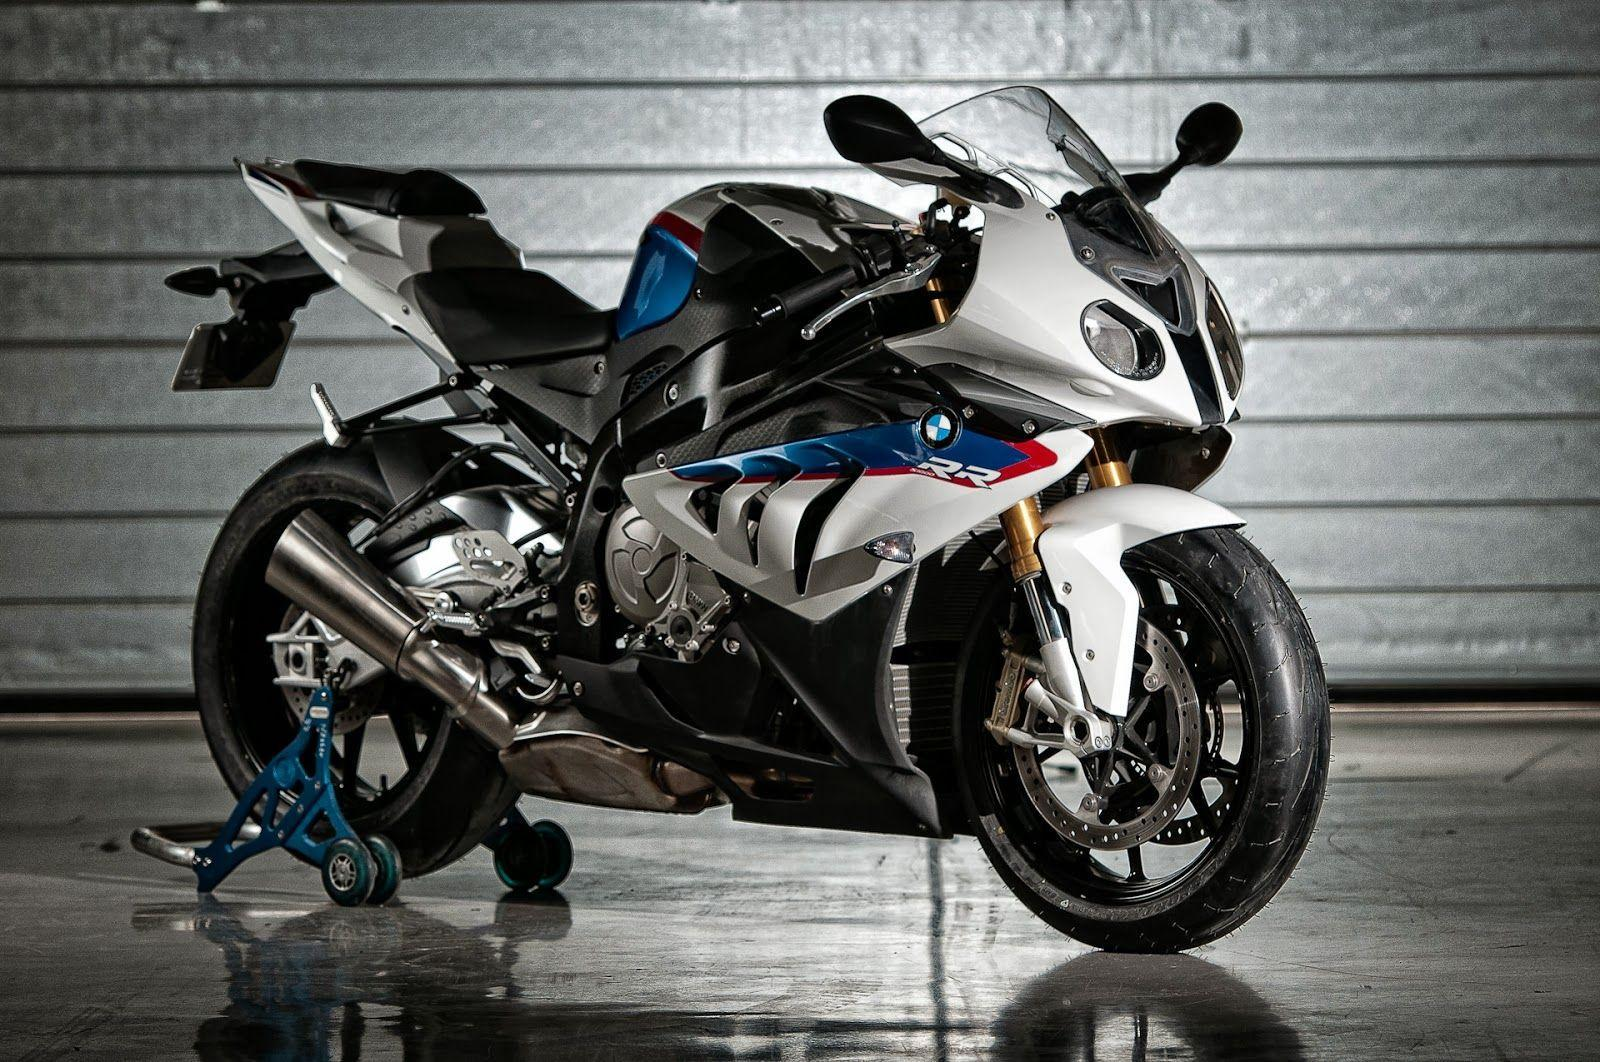 Bmw S1000rr Wallpapers Top Free Bmw S1000rr Backgrounds Wallpaperaccess